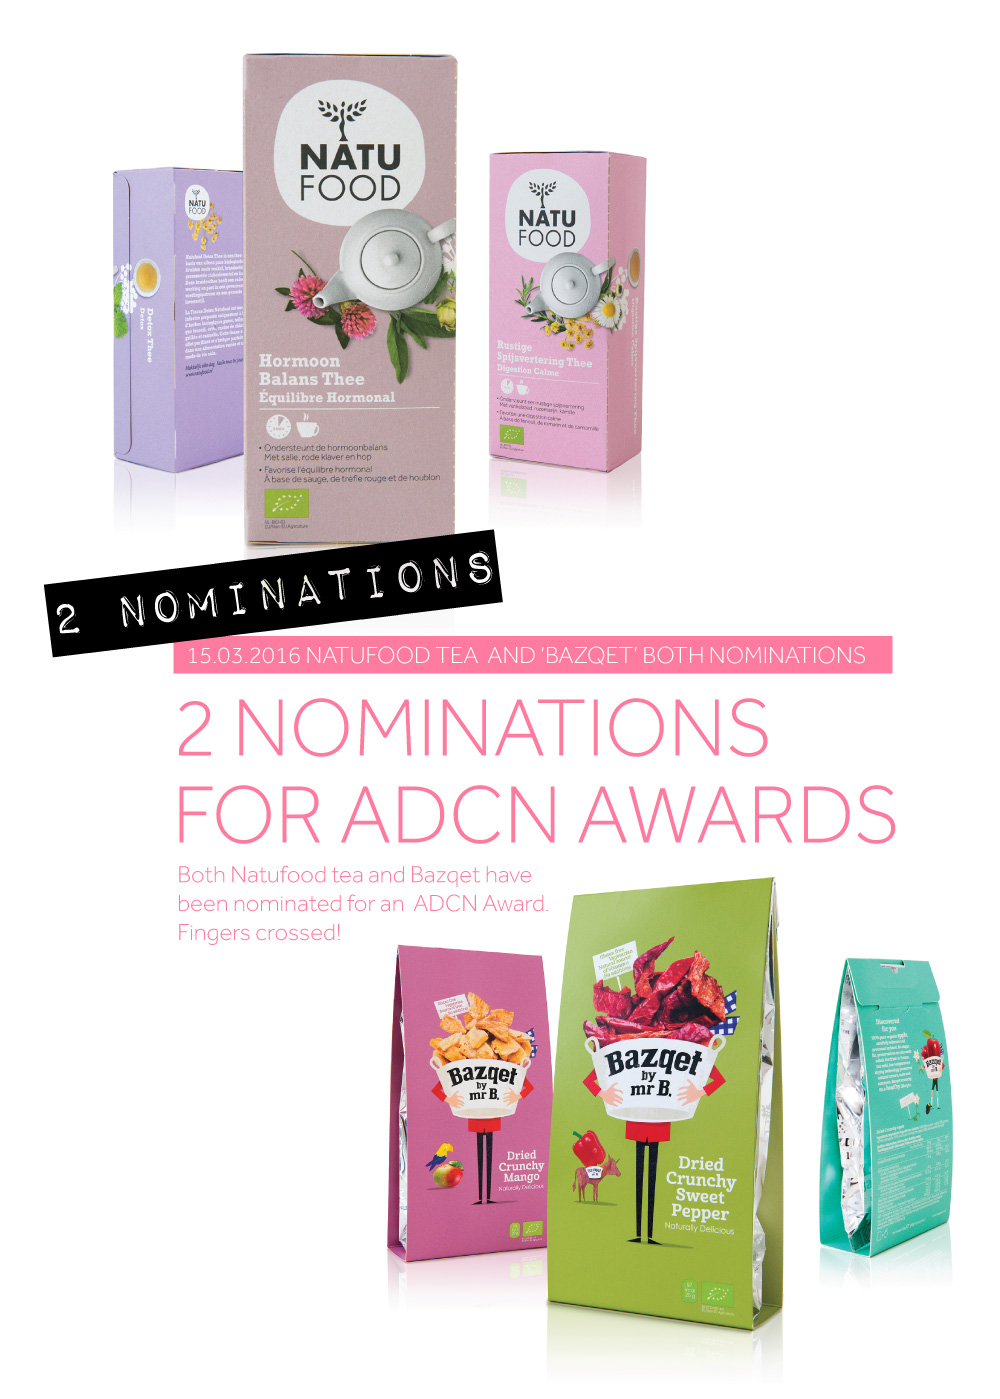 2 ADCN Nominations for Packaging. Natufood Tea and Bazqet.